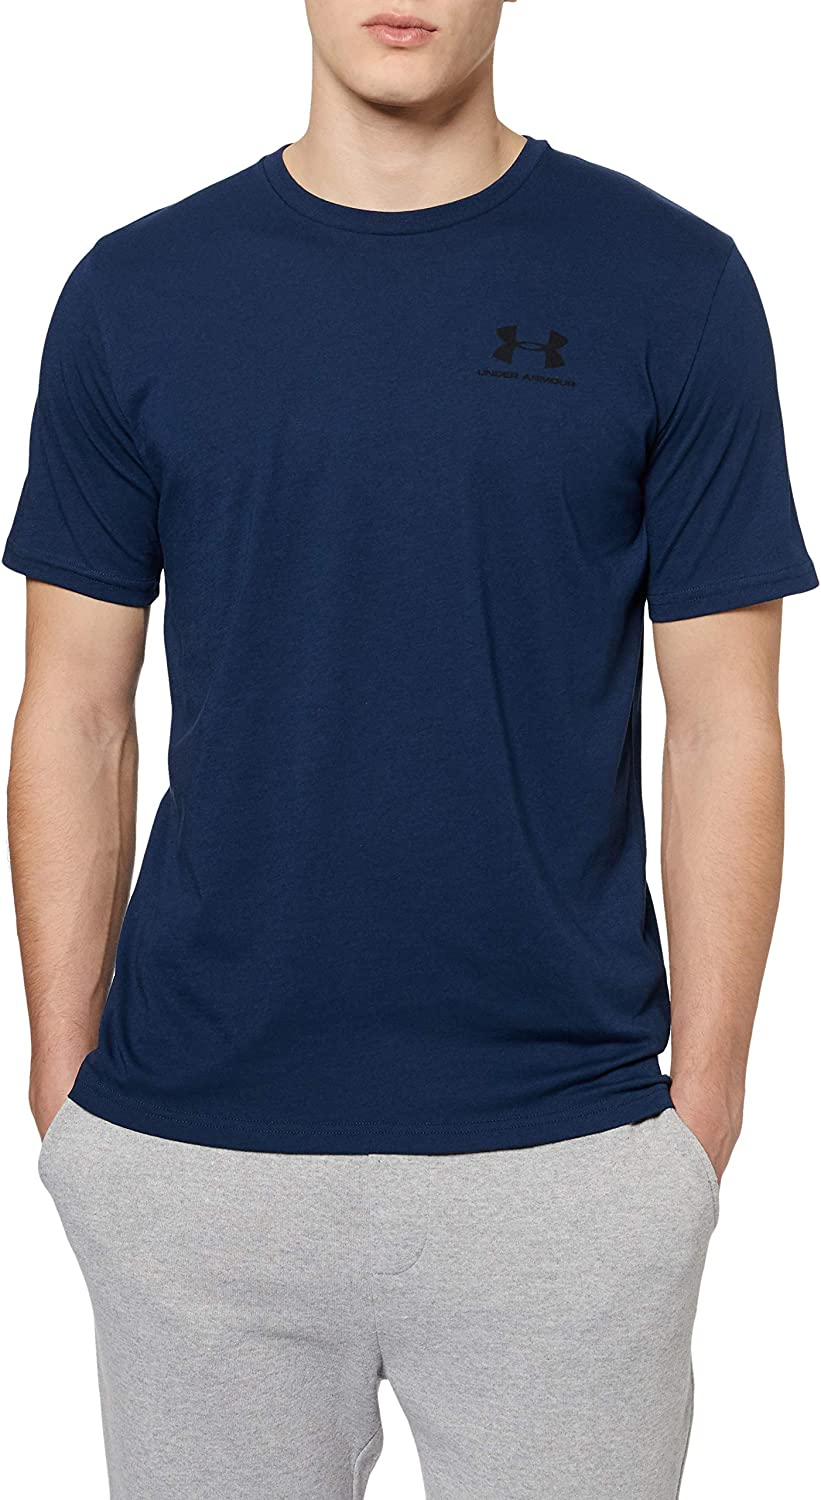 Academy//Black Super Soft Mens T Shirt for Training and Fitness Fast-Drying Mens T Shirt with Graphic Men 408 Under Armour Sportstyle Left Chest Blue L